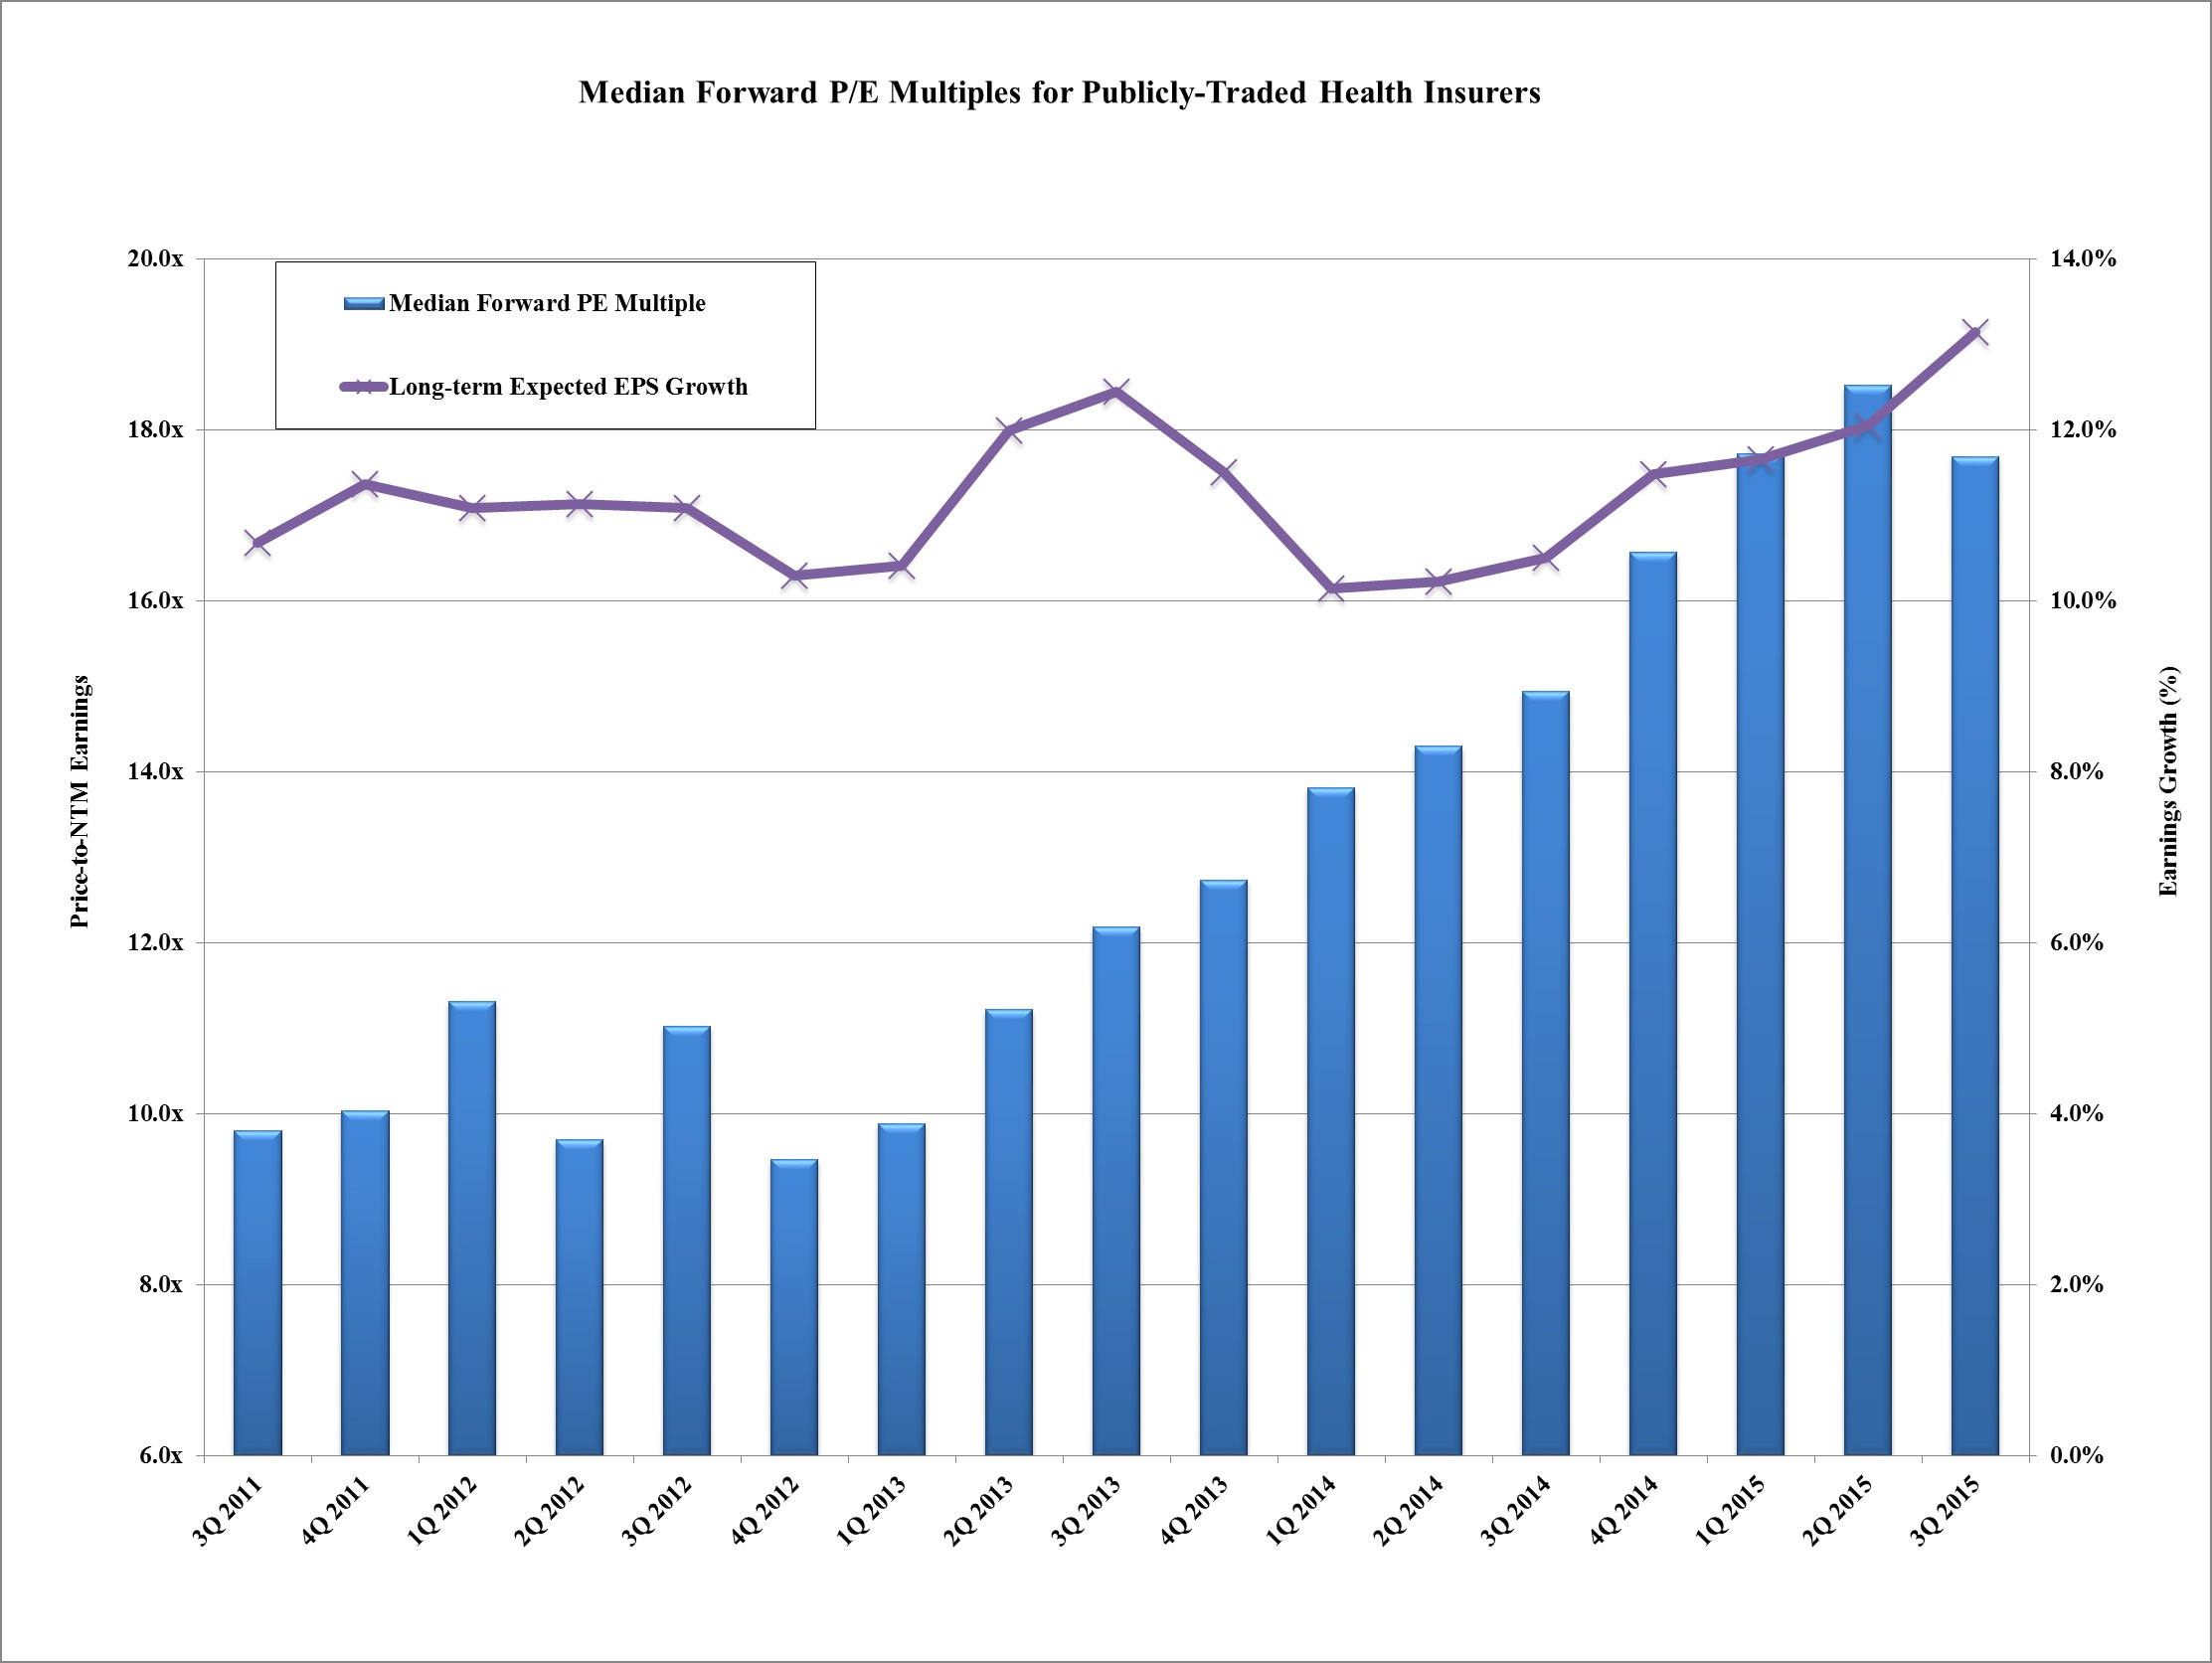 Median Forward P-E Multiples for Publicly-Traded Health Insurers 2015